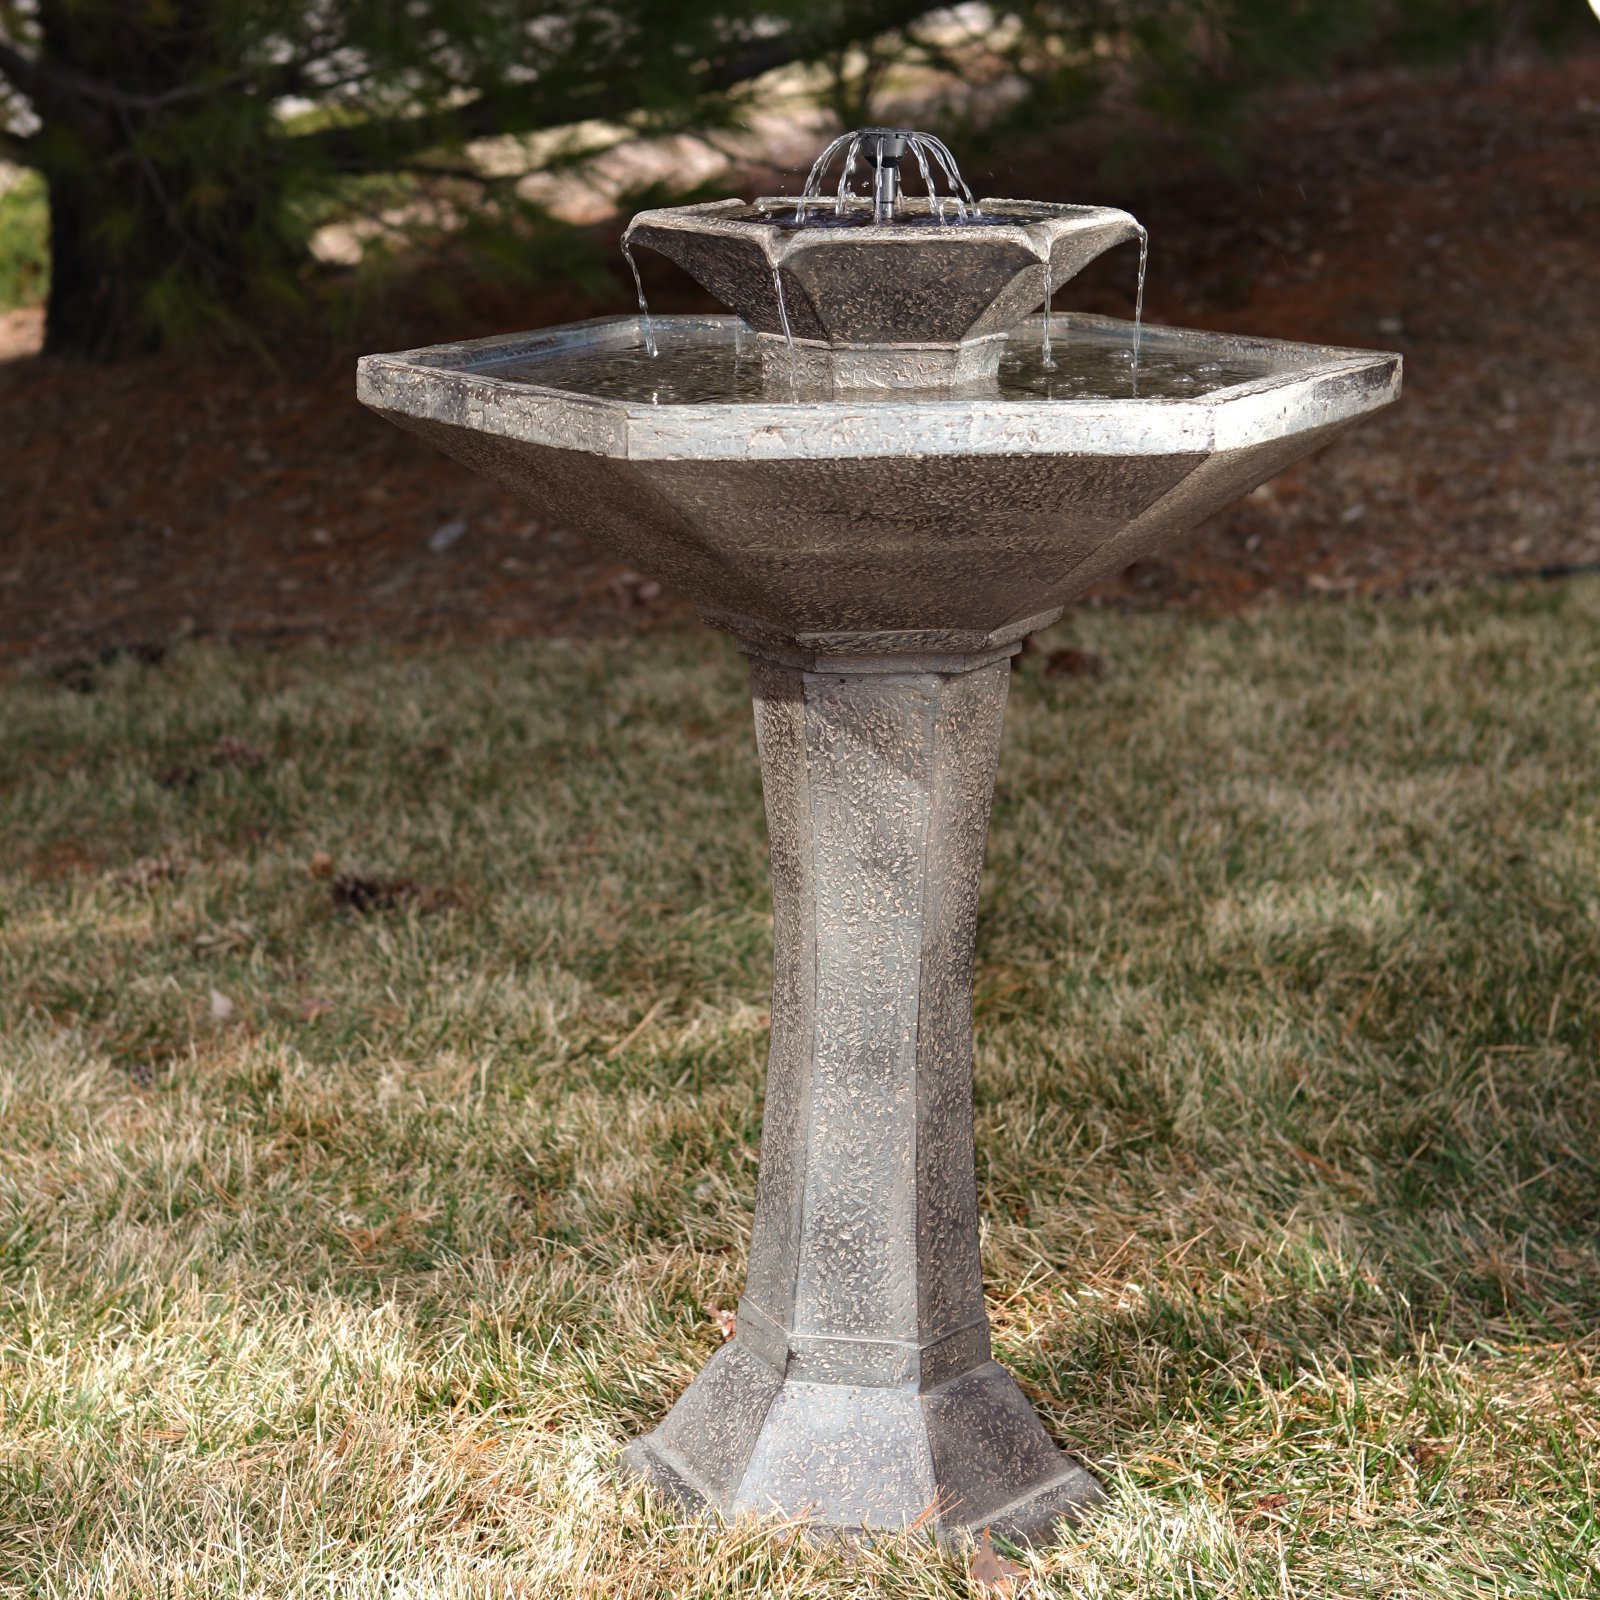 Smart Solar Alfresco 2-Tier Solar Birdbath Fountain by